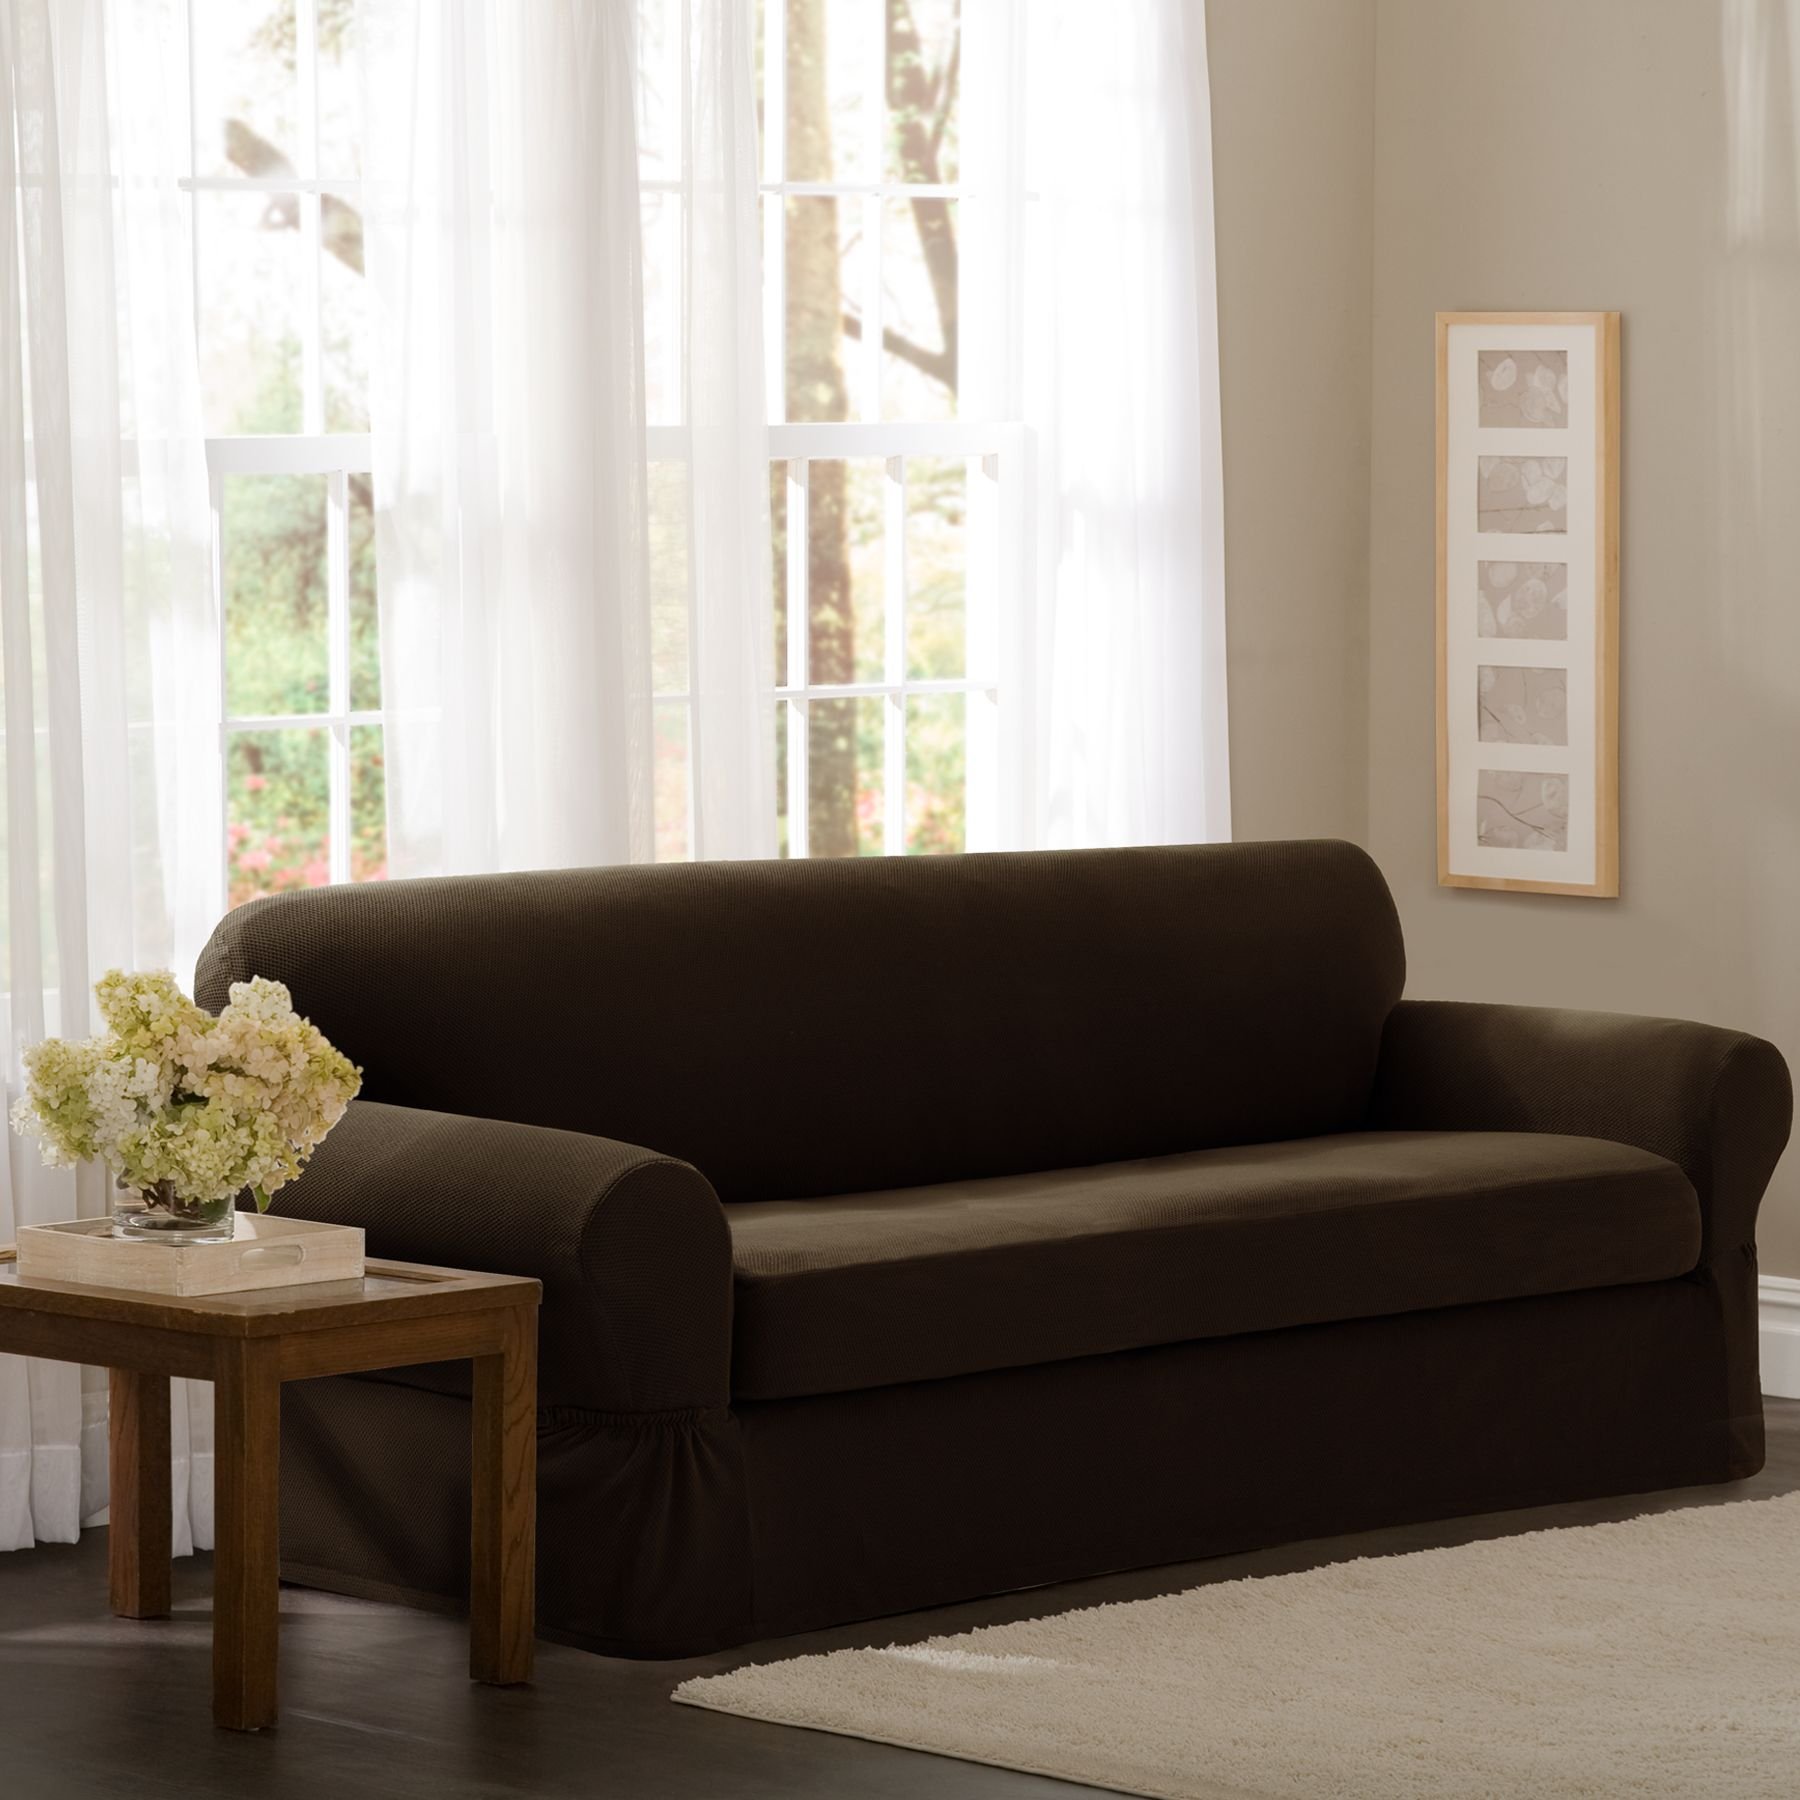 Essential Home 2 Piece Sofa Slipstretch Pixel Choc